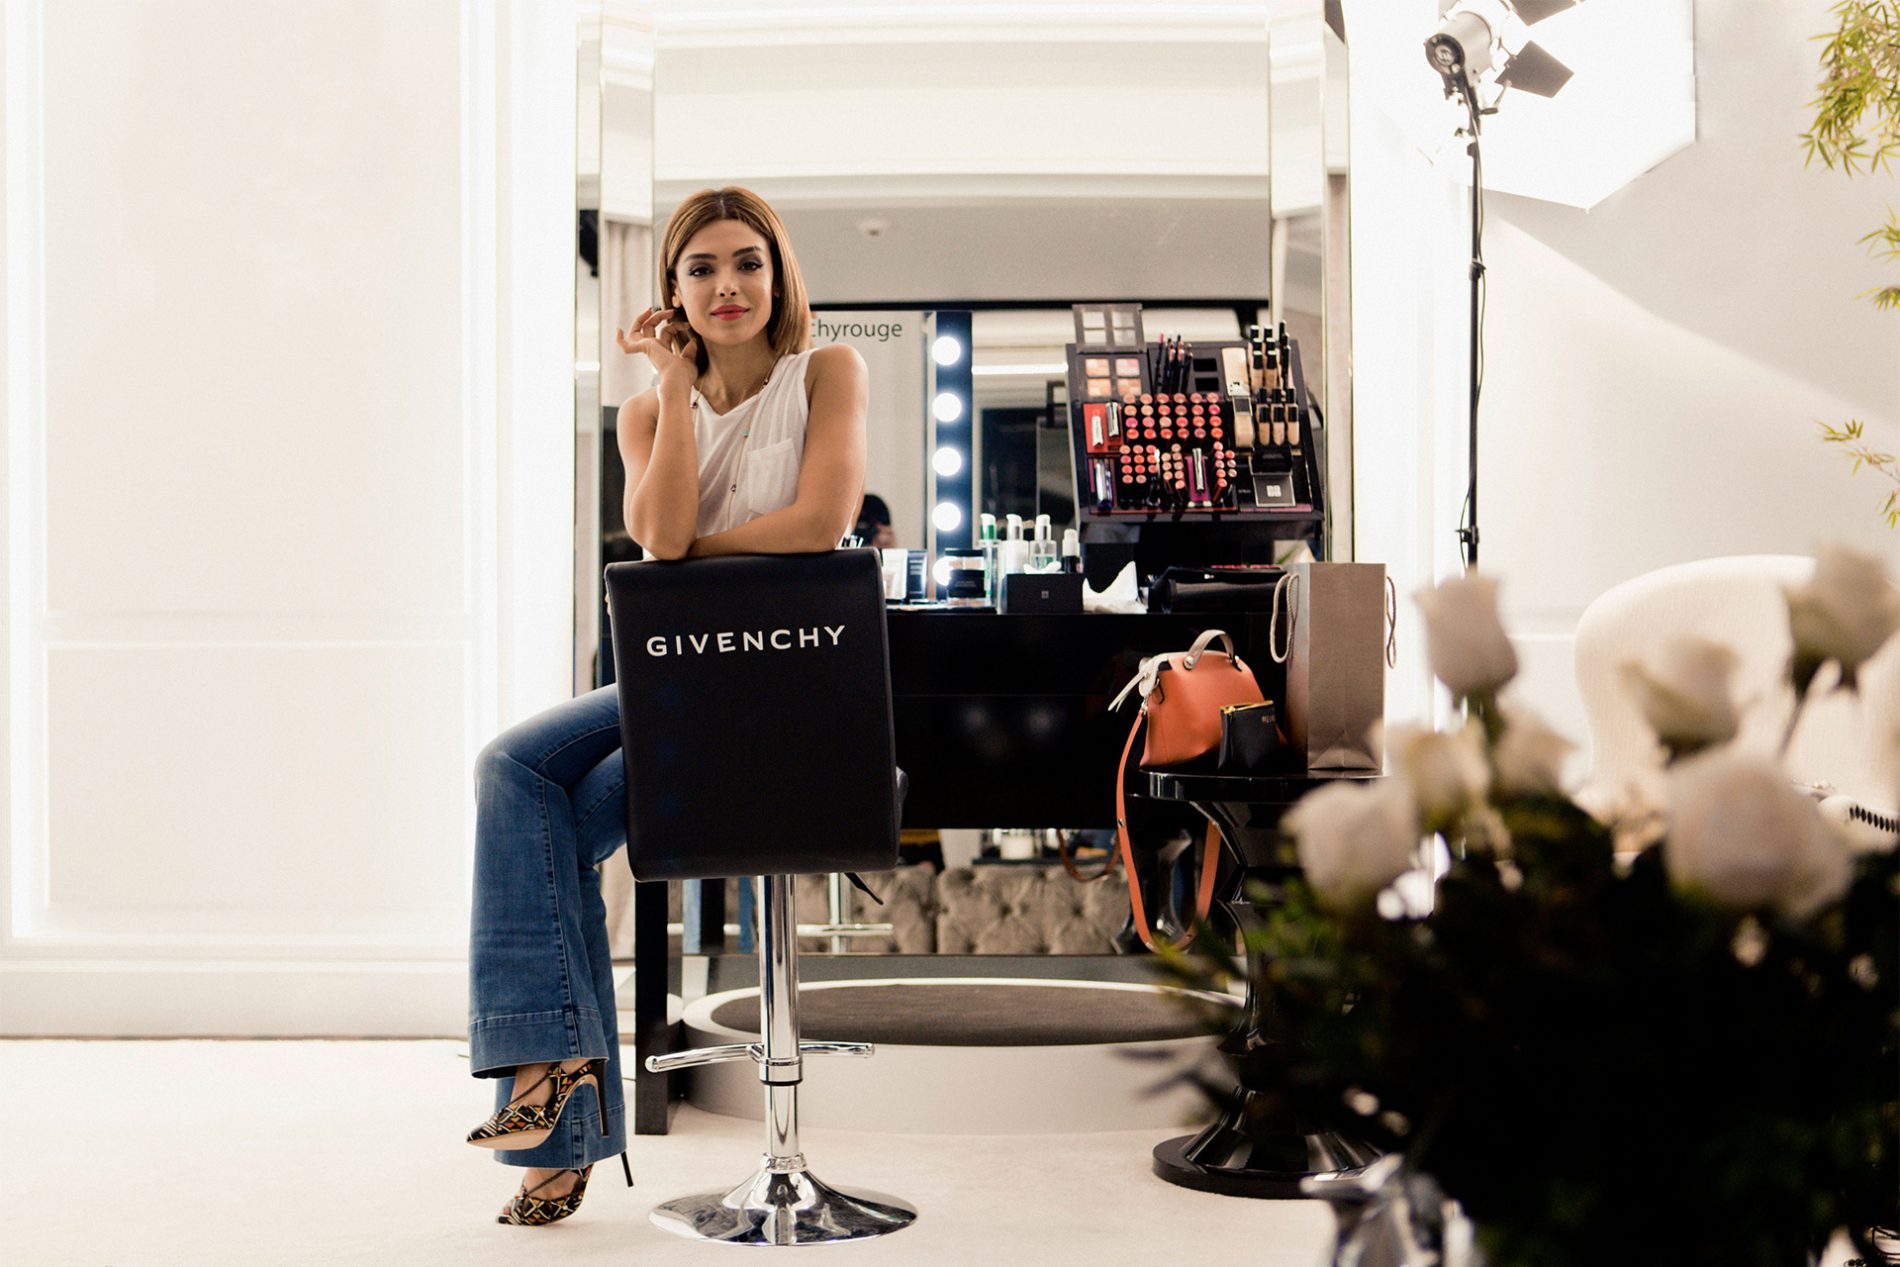 Yalda Golsharifi Blogger Givenchy Makeup Madrid